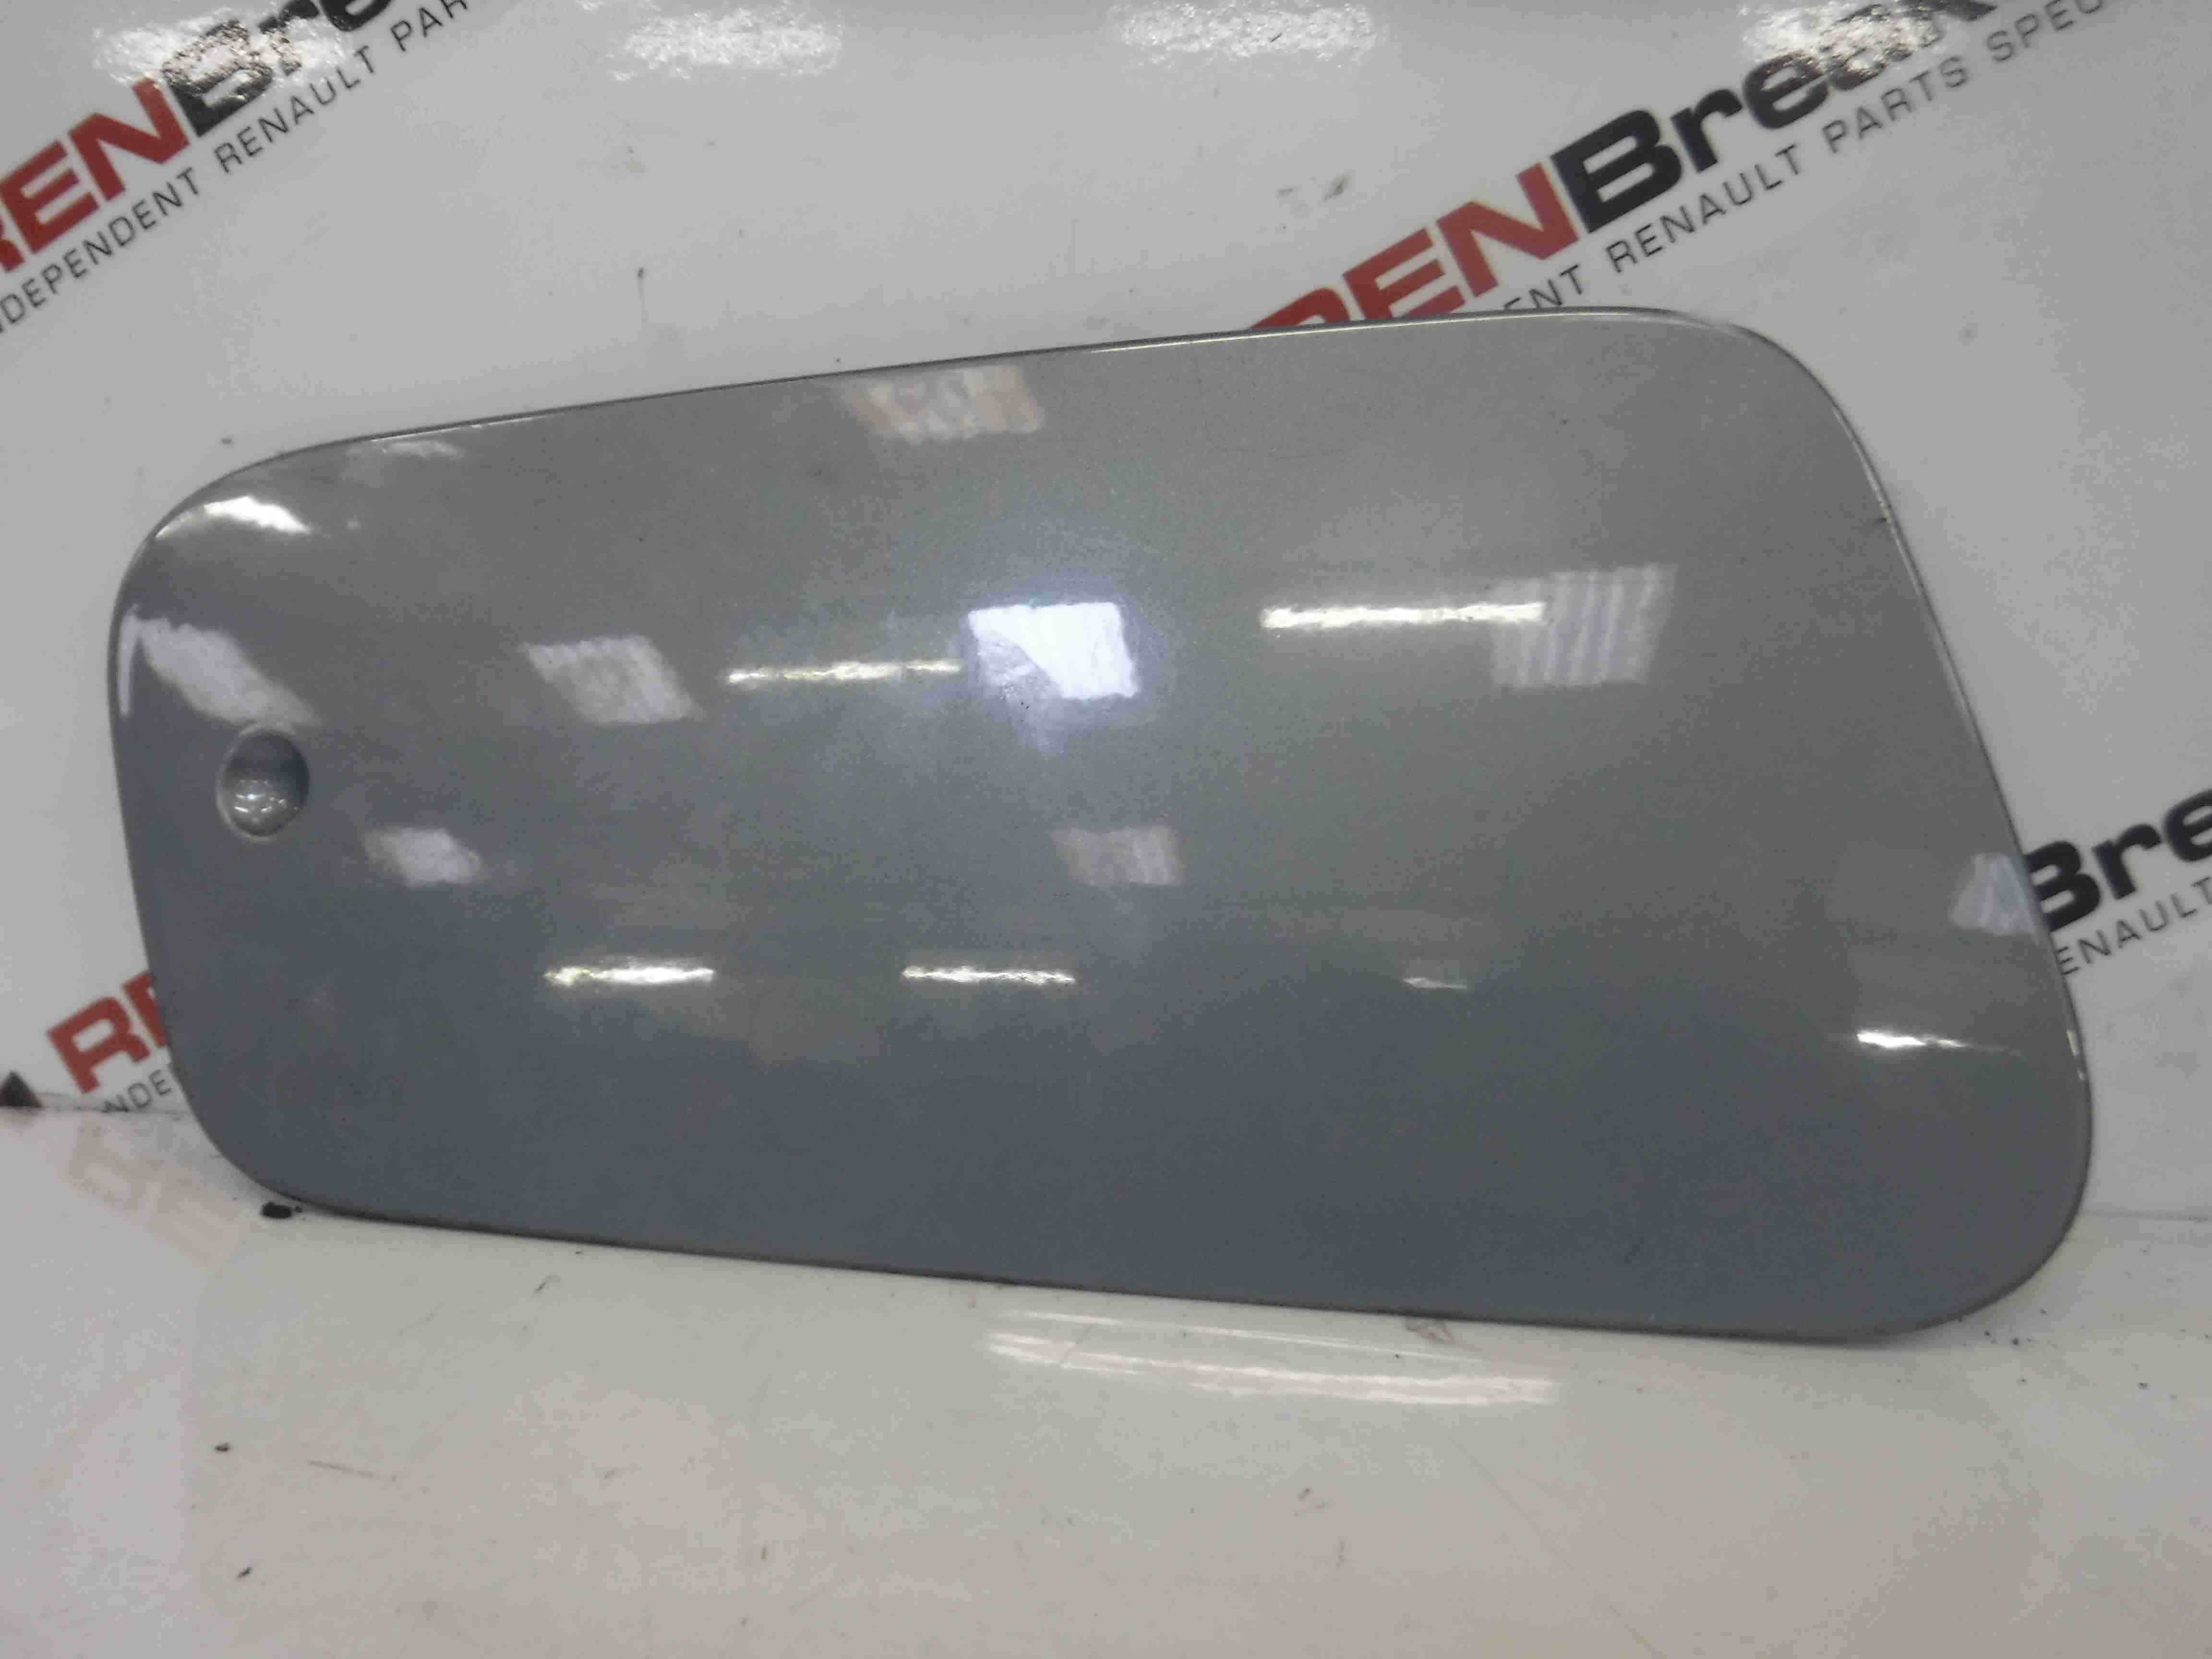 Renault Espace 2003-2013 Fuel Flap Cover Purple TED47 8200100989